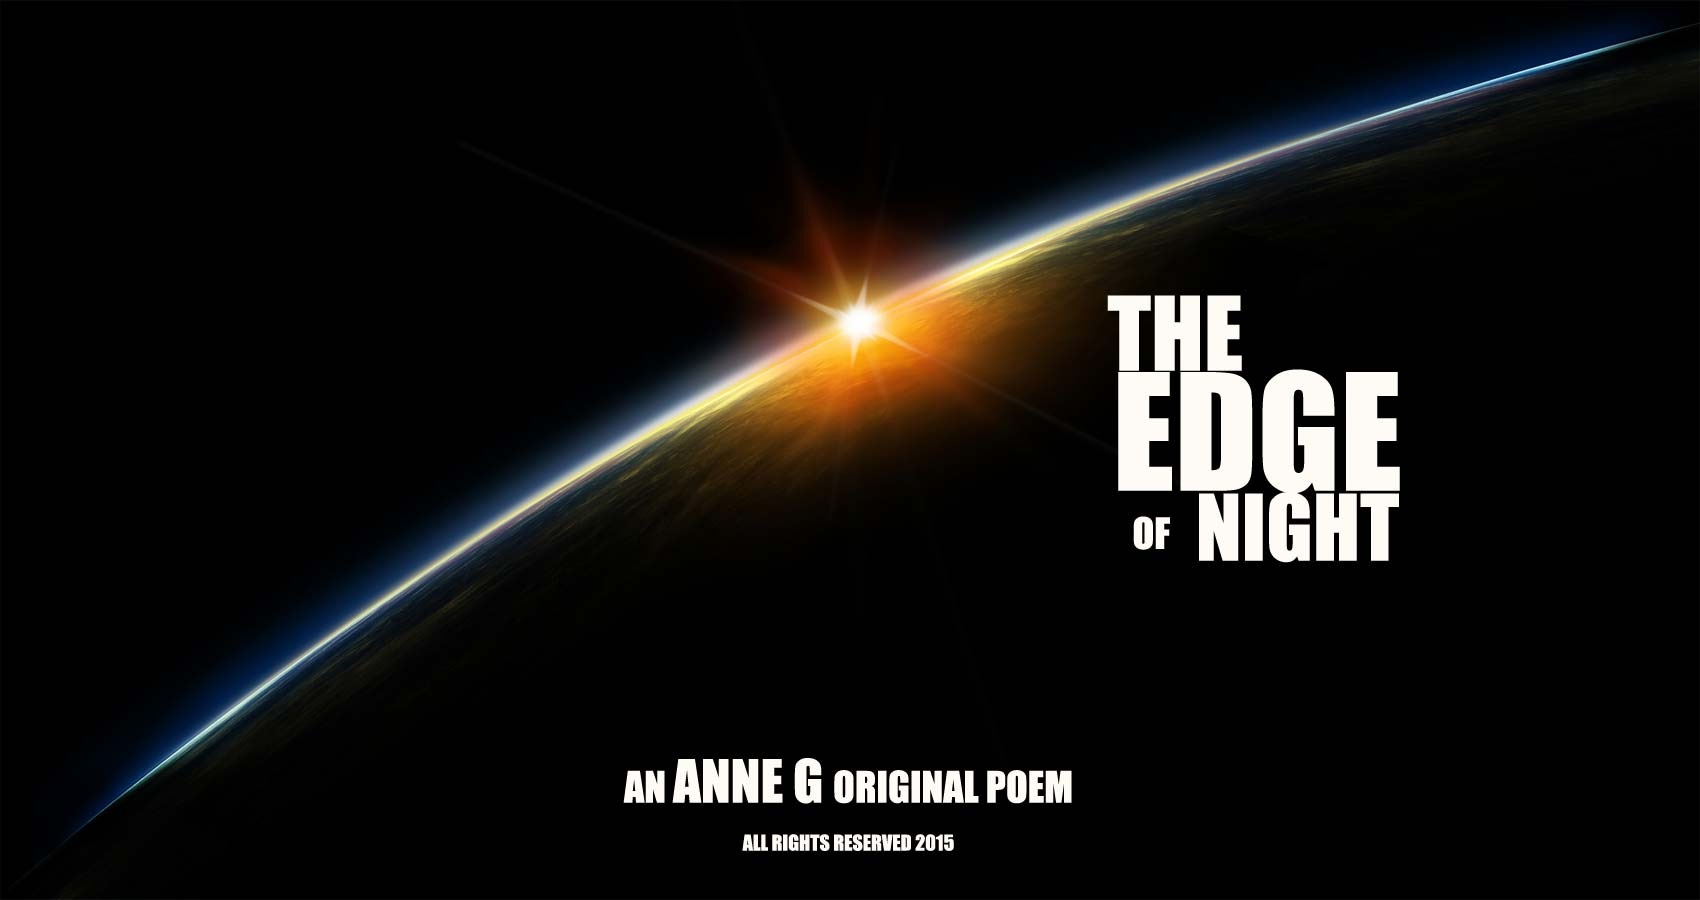 spillwords.com The Edge Of Night by Anne G